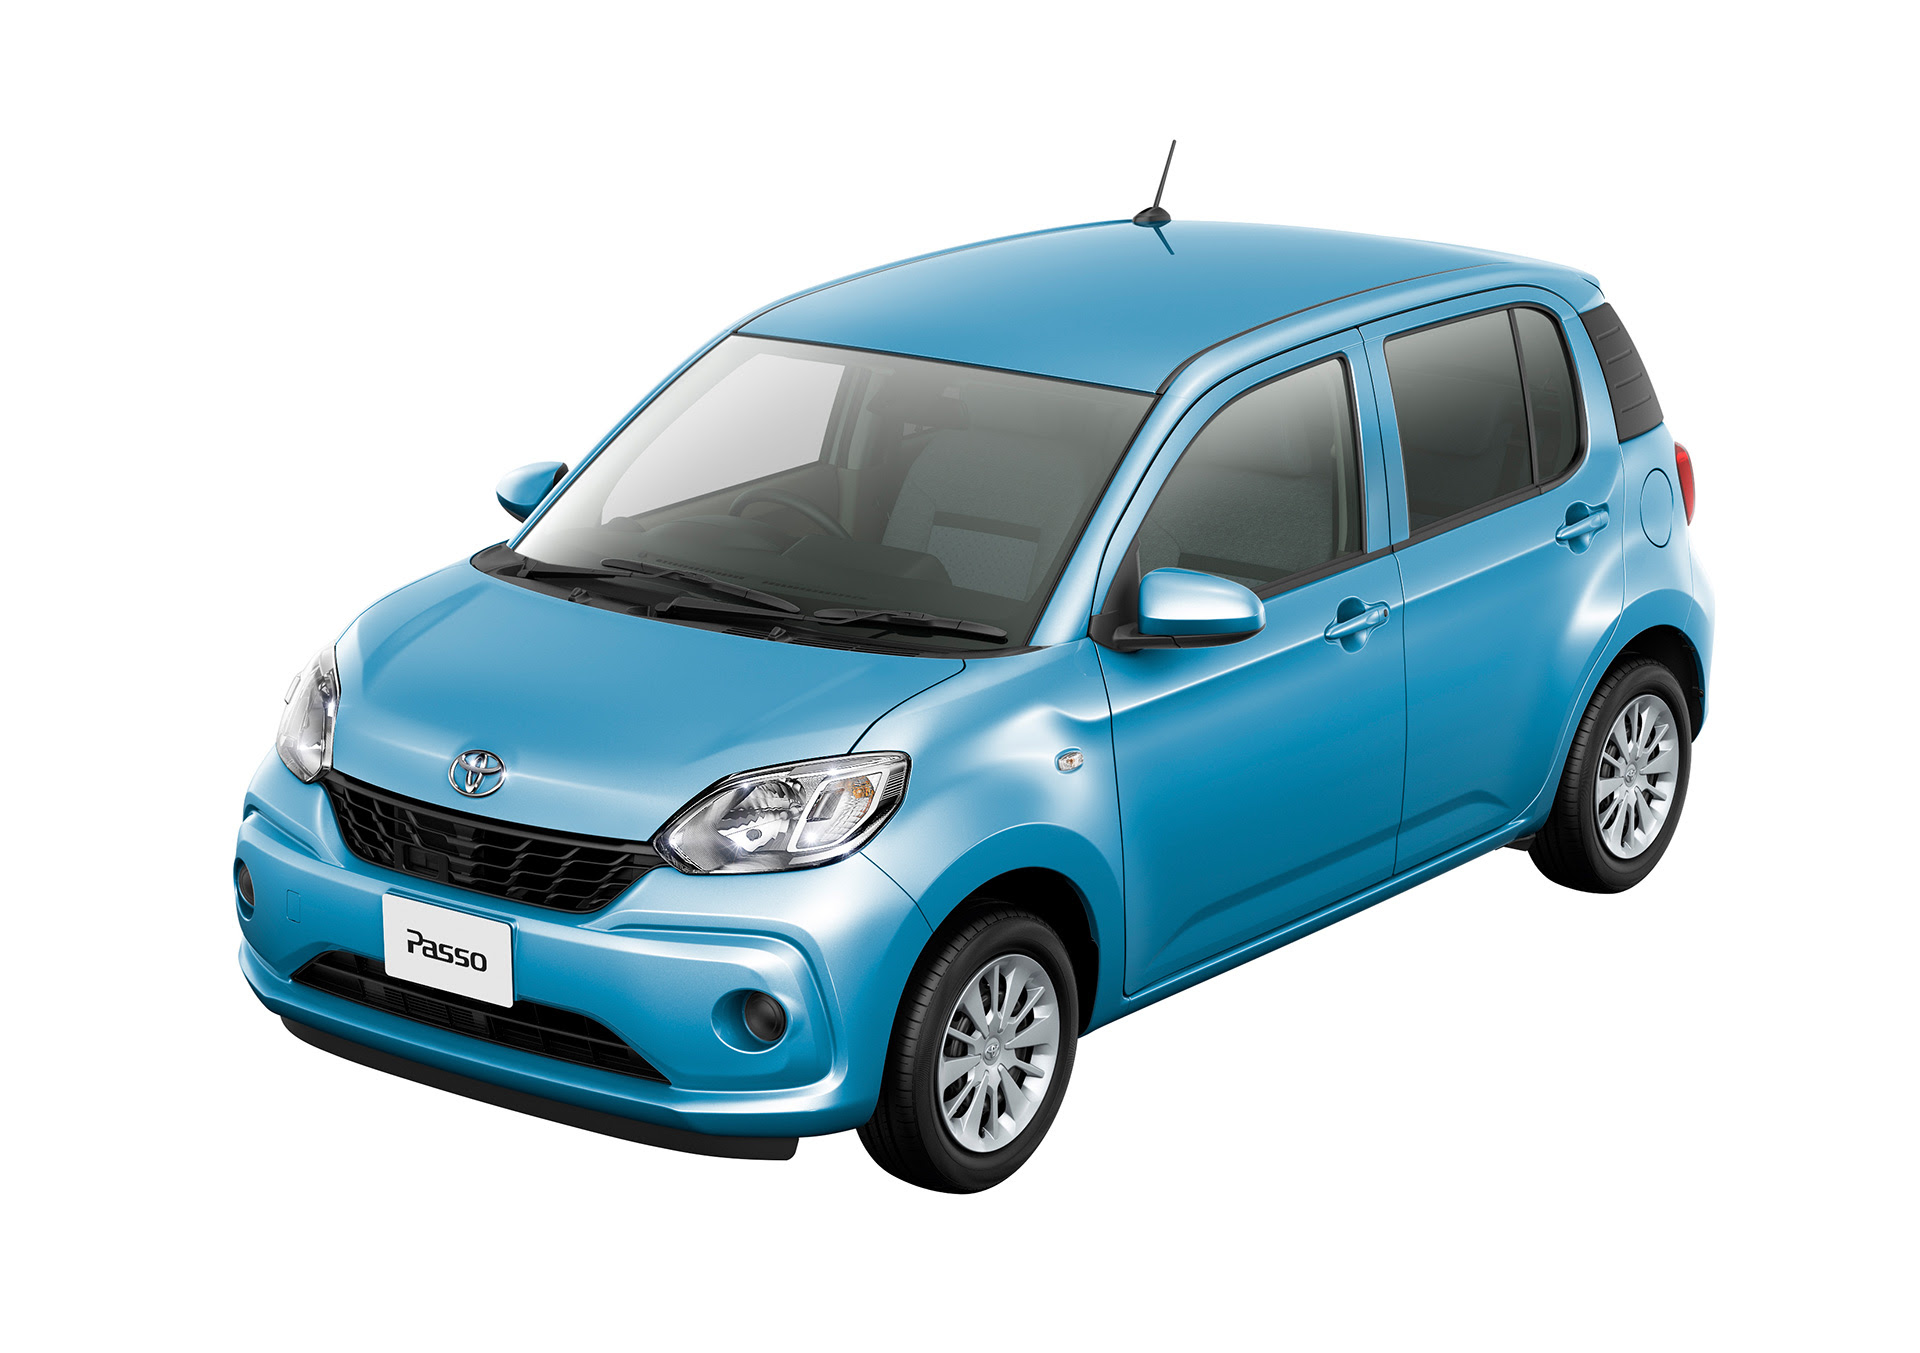 All-New Toyota Passo Goes on Sale in Japan - The News Wheel